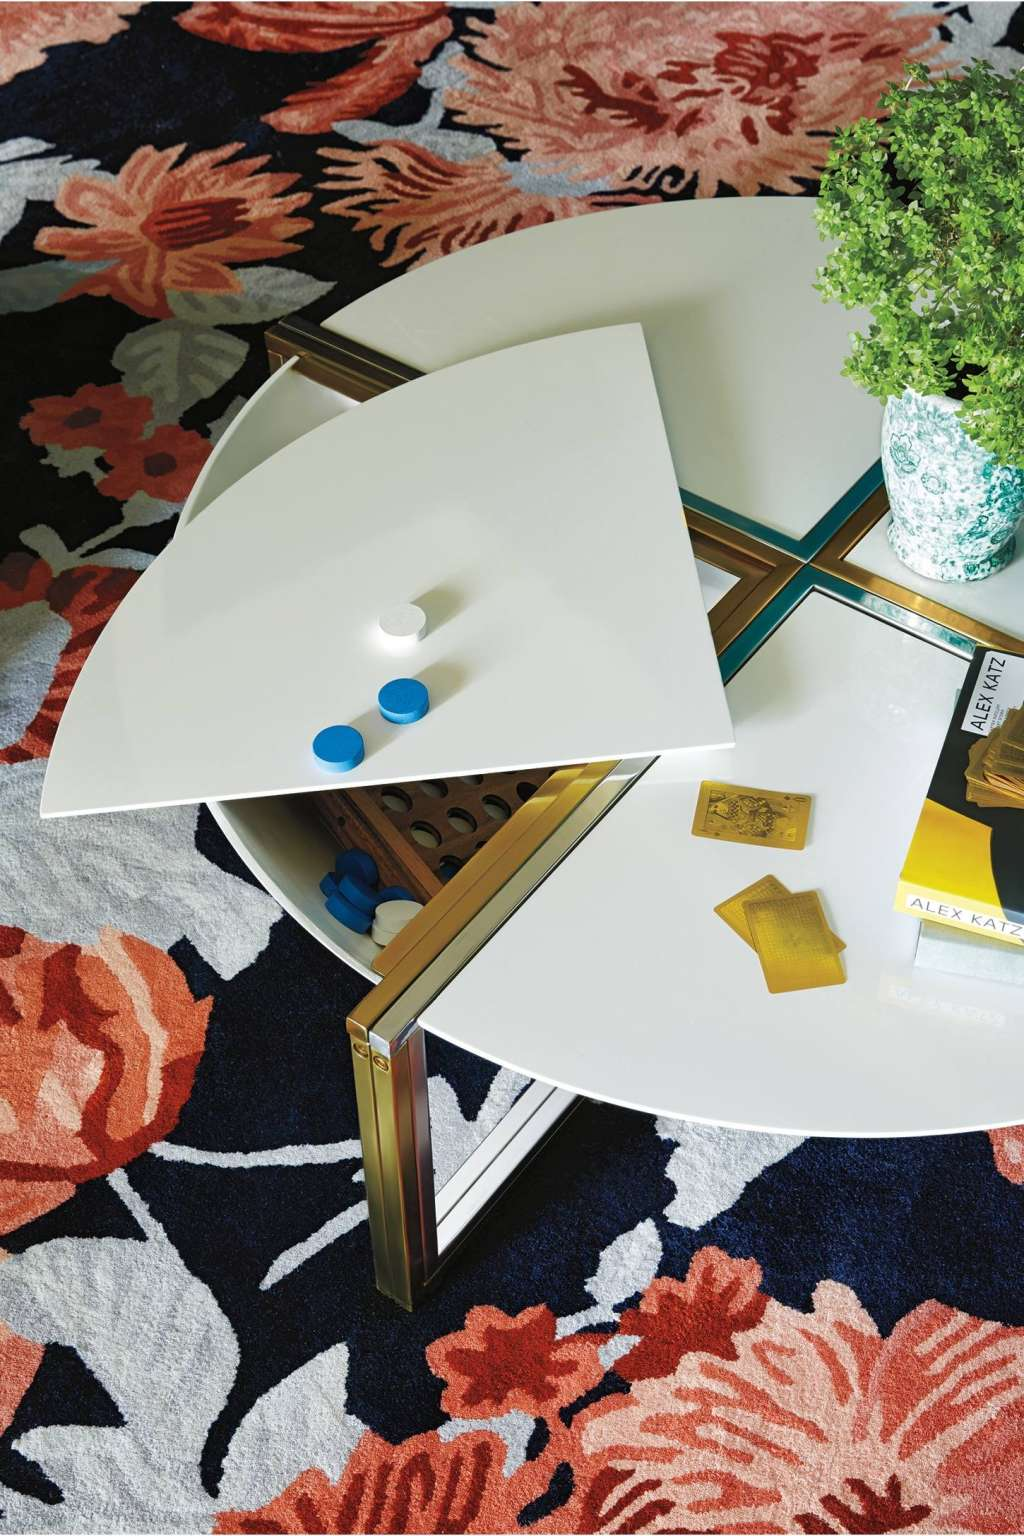 Our Favorite Multitasking Furniture for Small Spaces